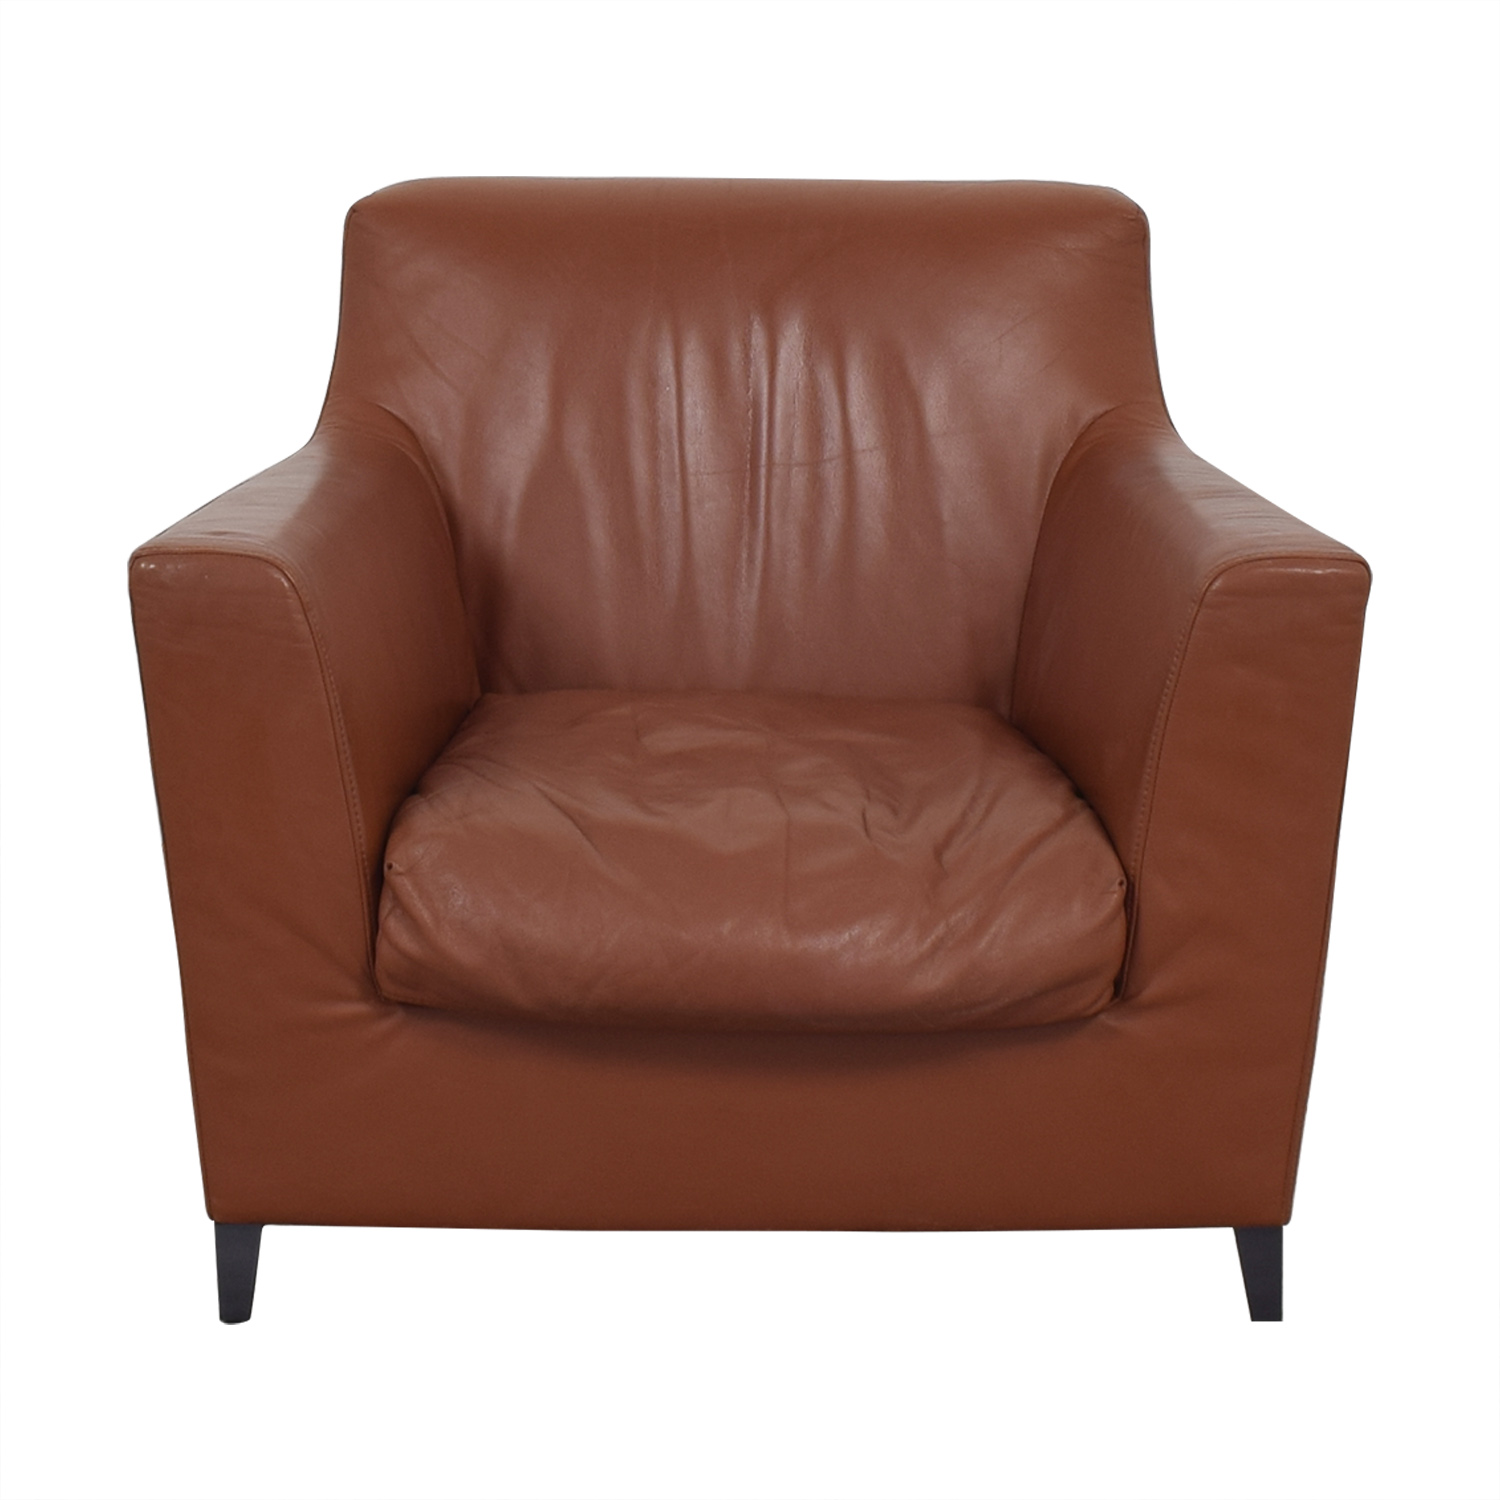 buy Ligne Roset Rive Droite Armchair with Ottoman Ligne Roset Accent Chairs